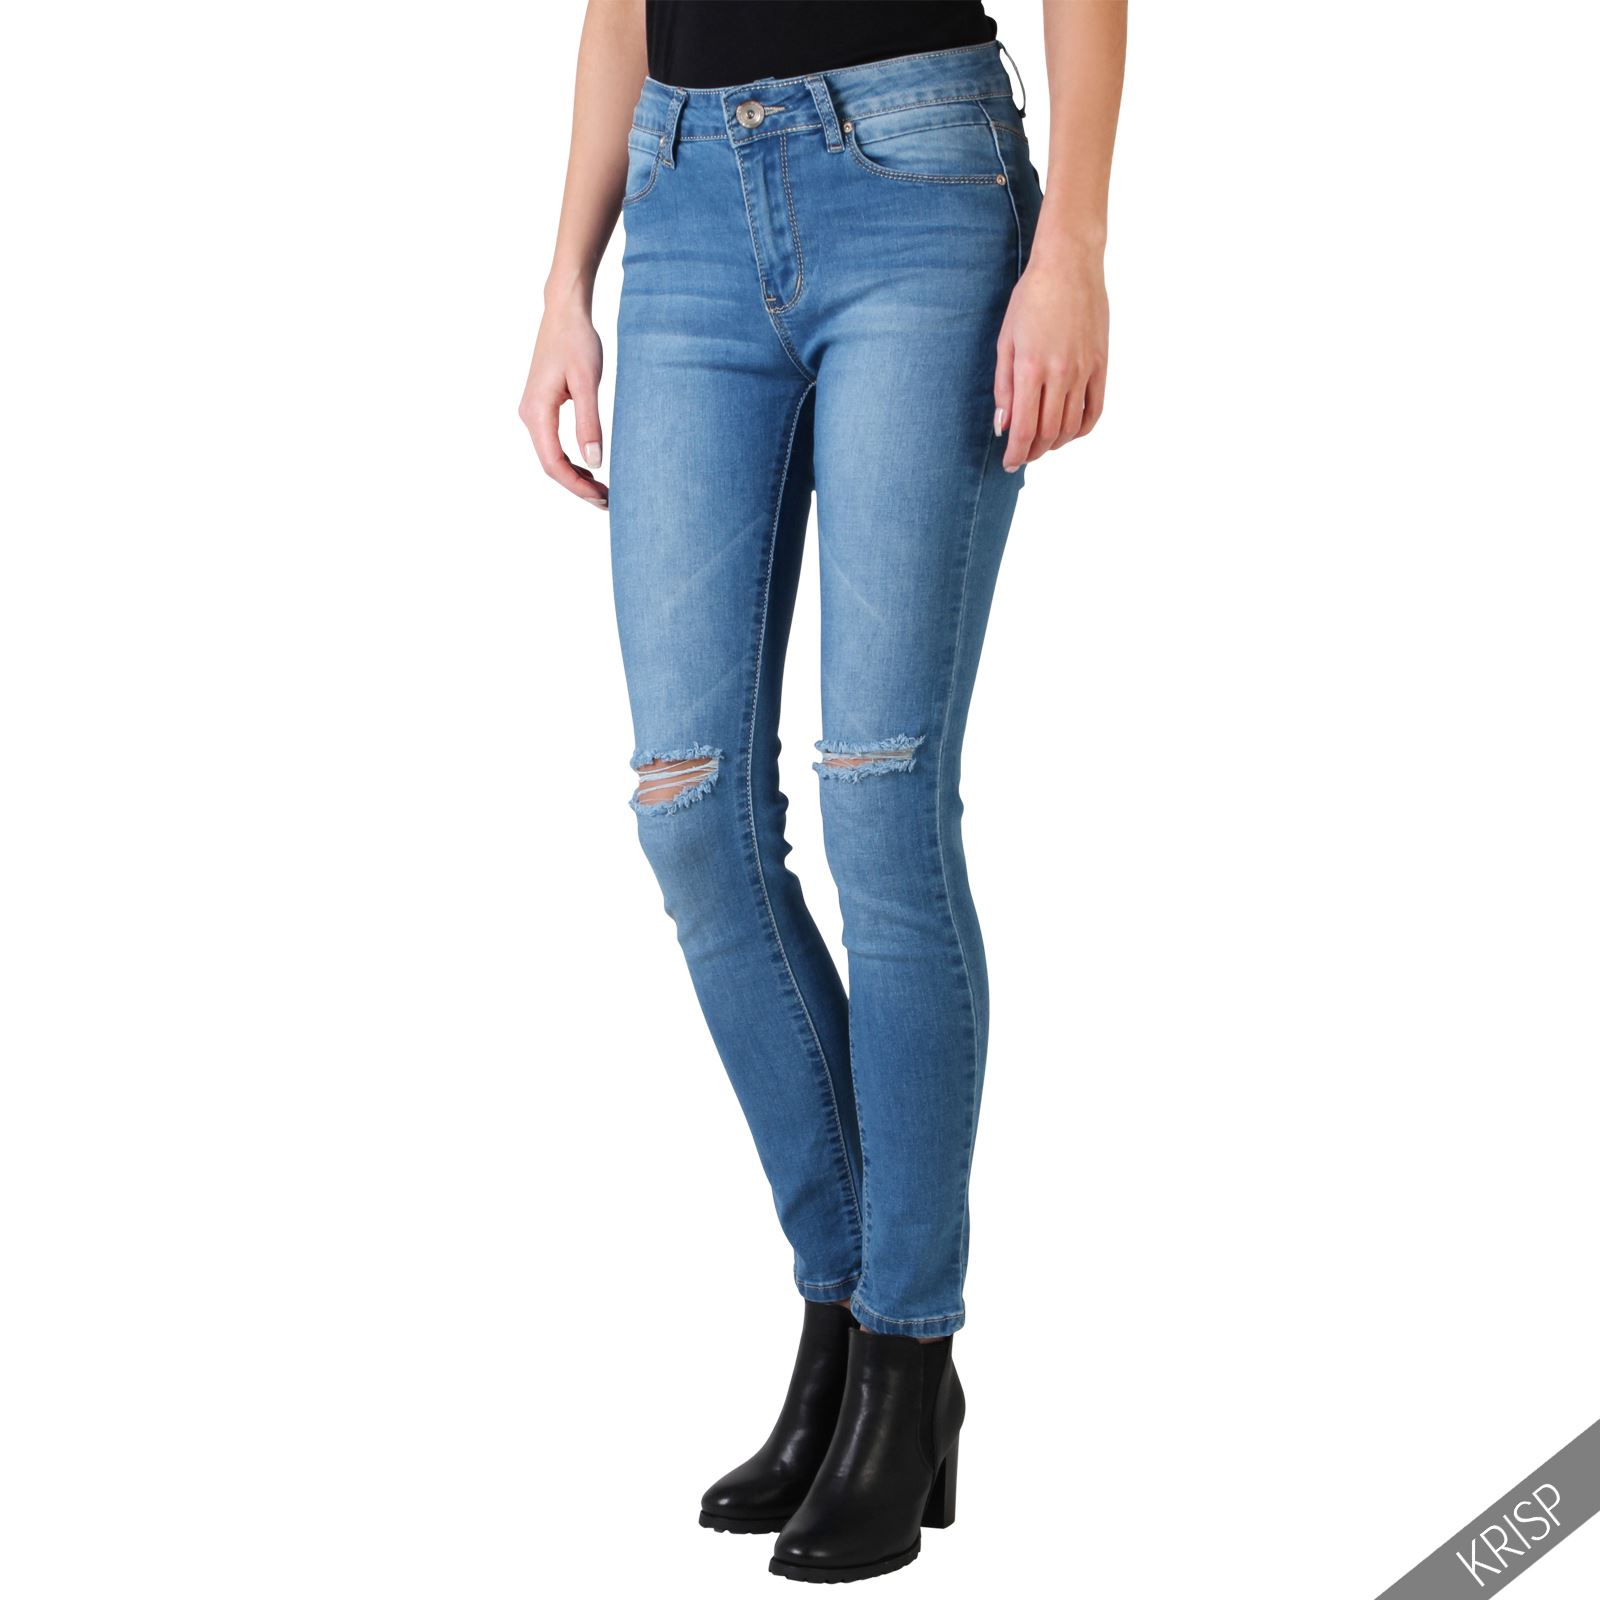 Girls Skinny Jeans Want the skinny on the latest jean fashion? Hot Topic has the latest looks for skinny jeans. We think the only thing that should be distressed in your life is your jeans. Check out these black ripped skinny jeans. Or go old school with some acid wash skinny jeans.